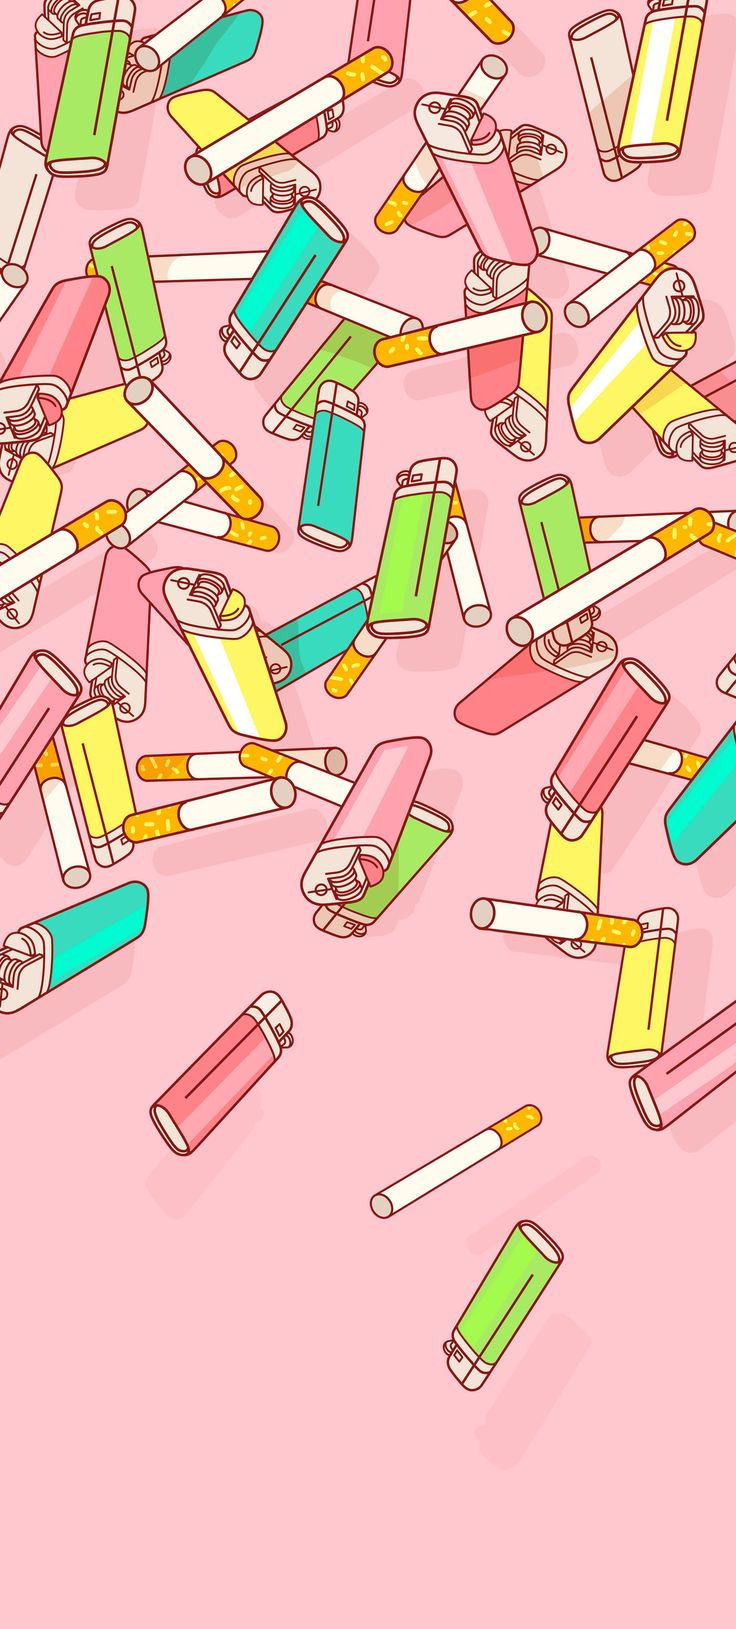 https://www.behance.net/gallery/28817163/Smoking-is-good-for-you